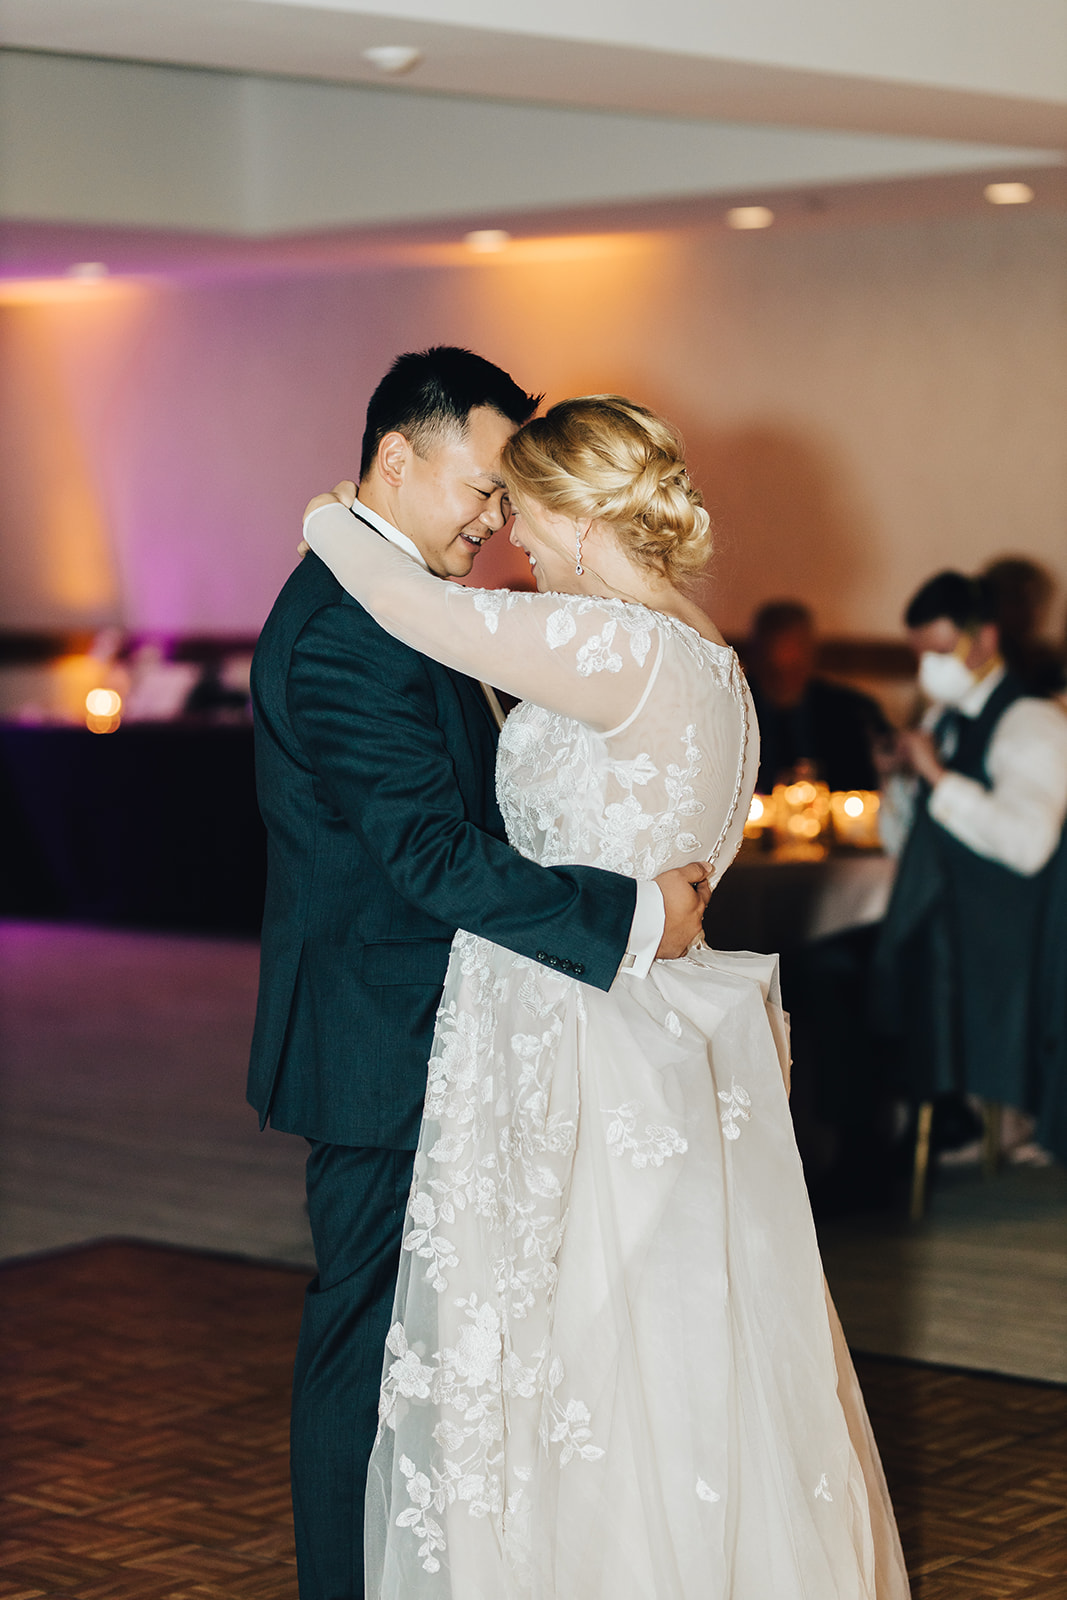 Bride and grooms first dance at their West Bay Beach wedding